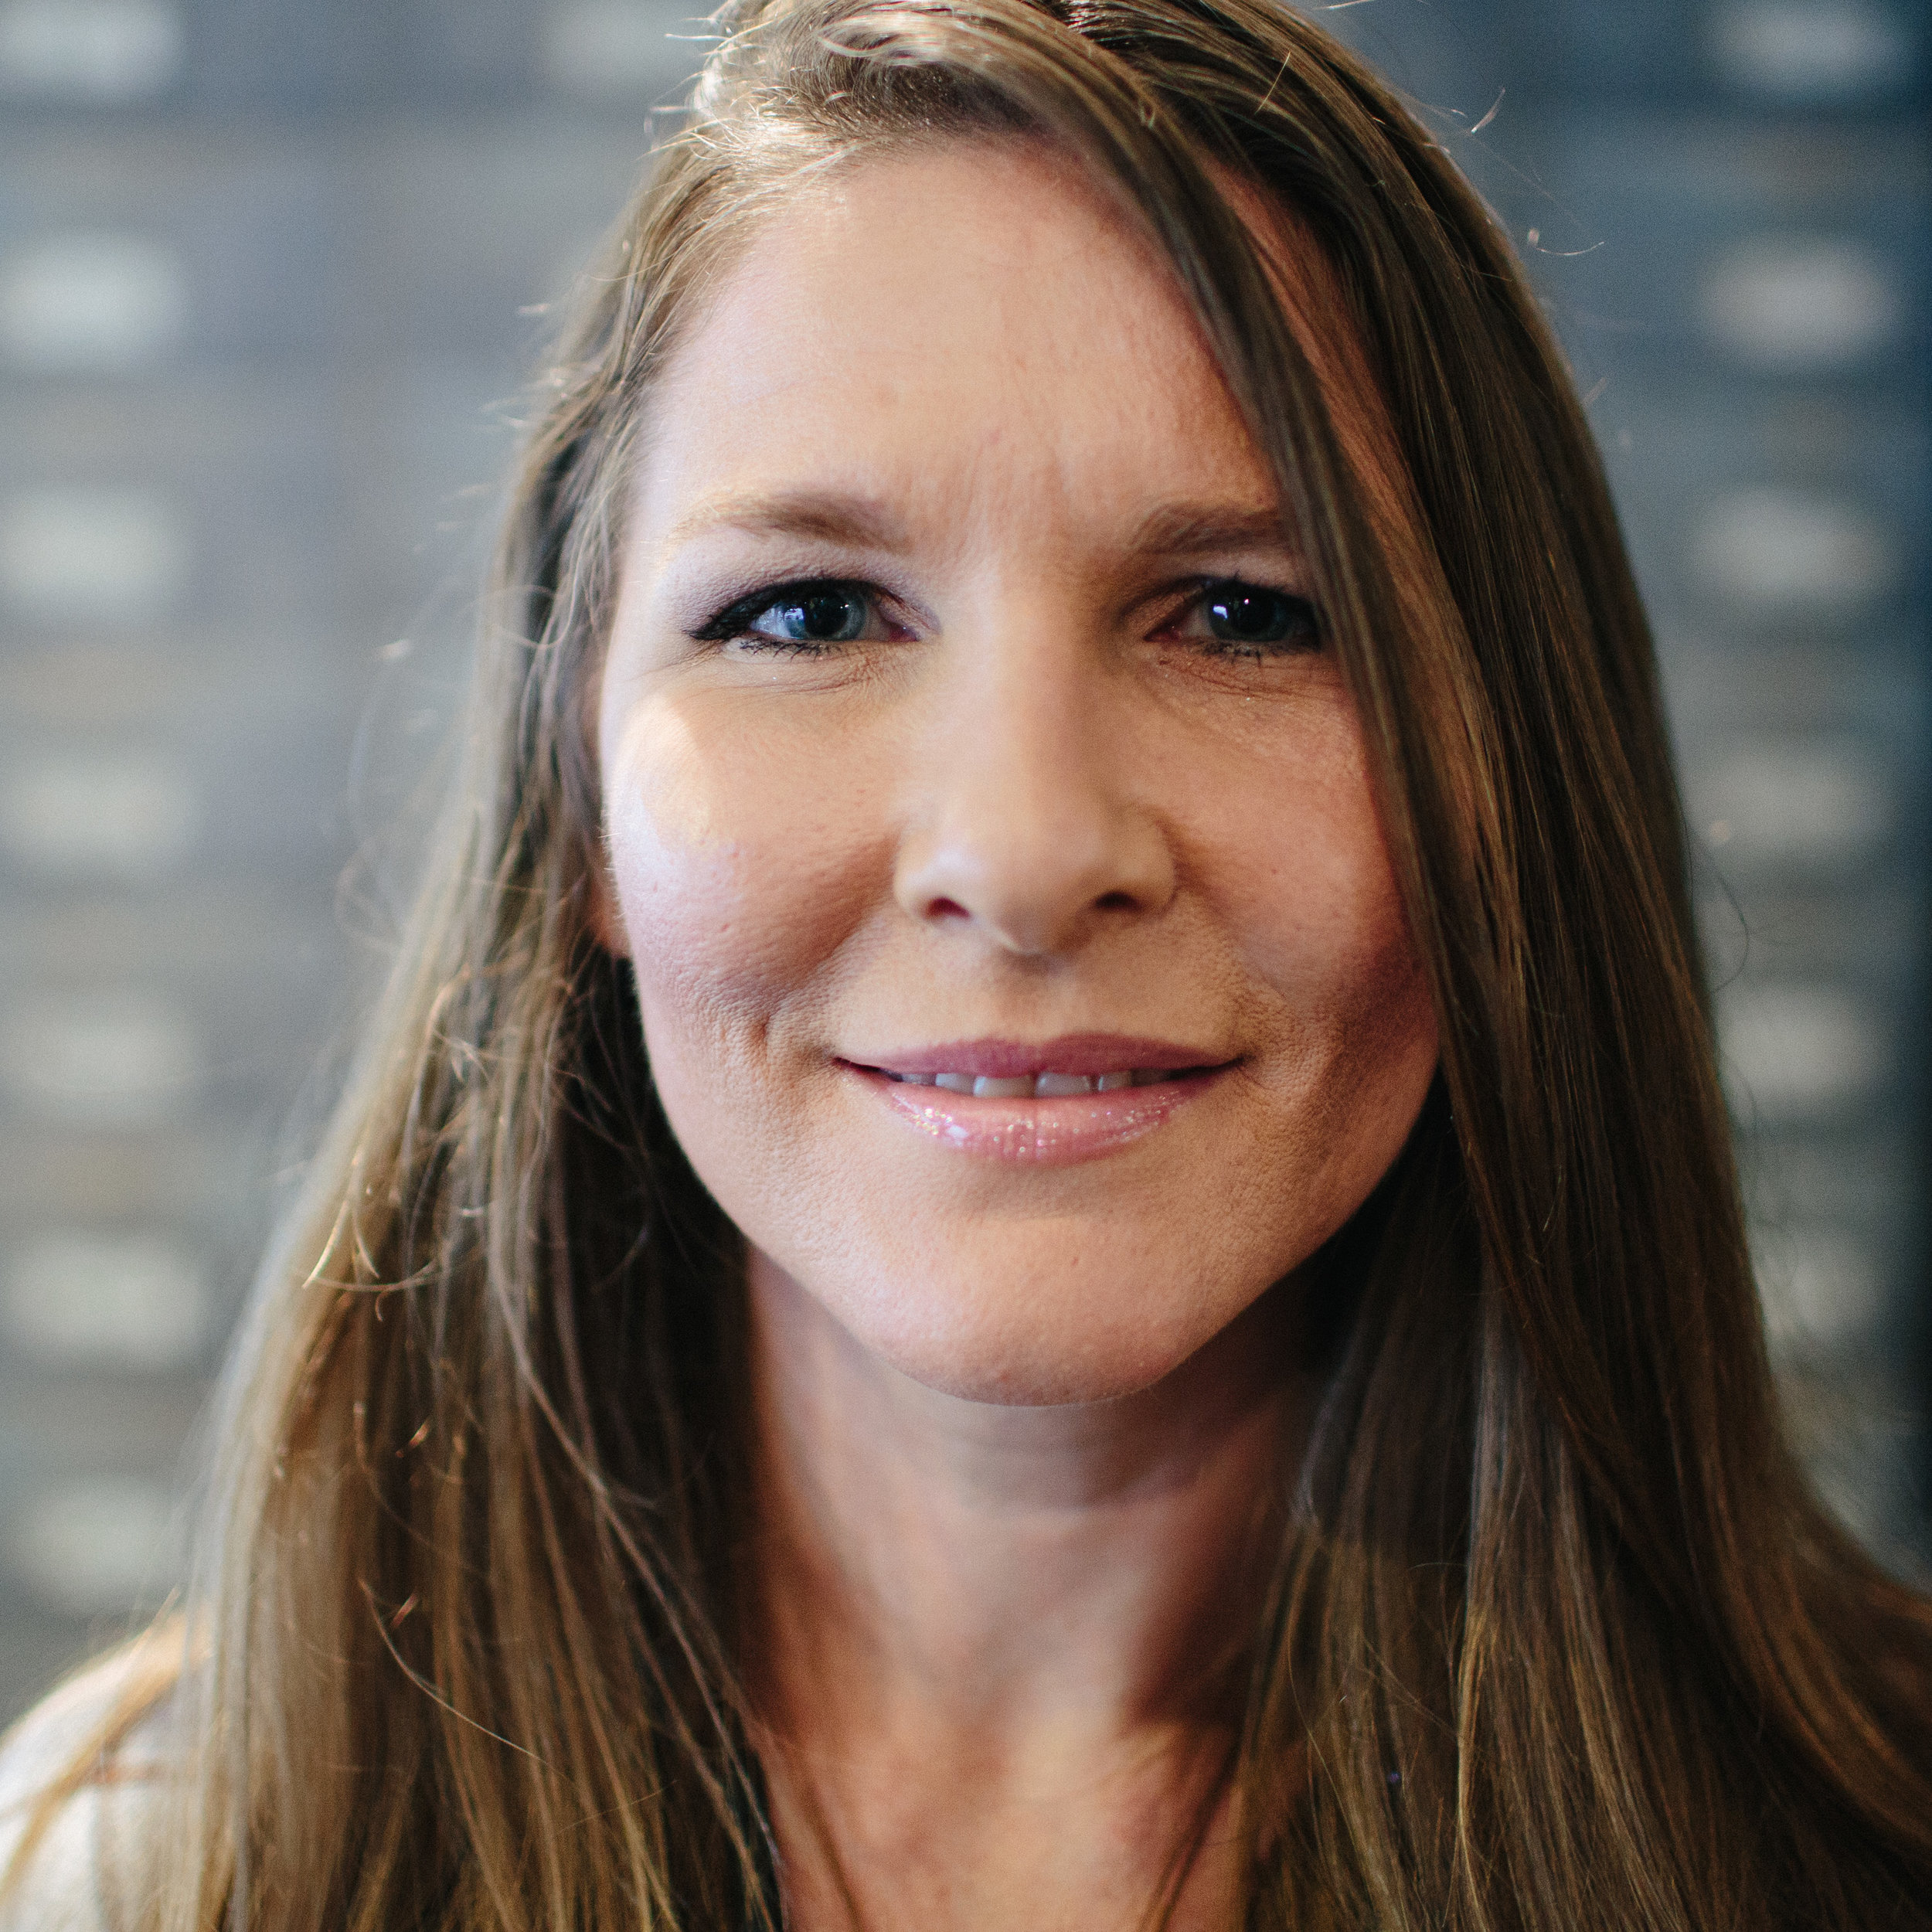 """Shelley Winner has a history with substance abuse and was released from Federal Prison in July 2016. She took Code Tenderloin in November 2016. As a result of her participation in Code Tenderloin she was hired at Microsoft as a Product Service Adviso with Microsoft in March 2017. She was named MVP within 2 months of her hire date and received her first promotion within her first year. She is now a full-time employee with full benefits, including education reimbursement. Understanding how important it is to share her story to help those that follow her, Shelley has spoken at many Human Resource professional events to speak about the value hiring a person coming home from prison can add to an organization.  """"Code Tenderloin helped equip me with the skills to land a job in tech which changed my life by giving me a career instead of just a job. I am forever grateful for Code Tenderloin.""""   Shelley Winner, November 2016 cohort"""